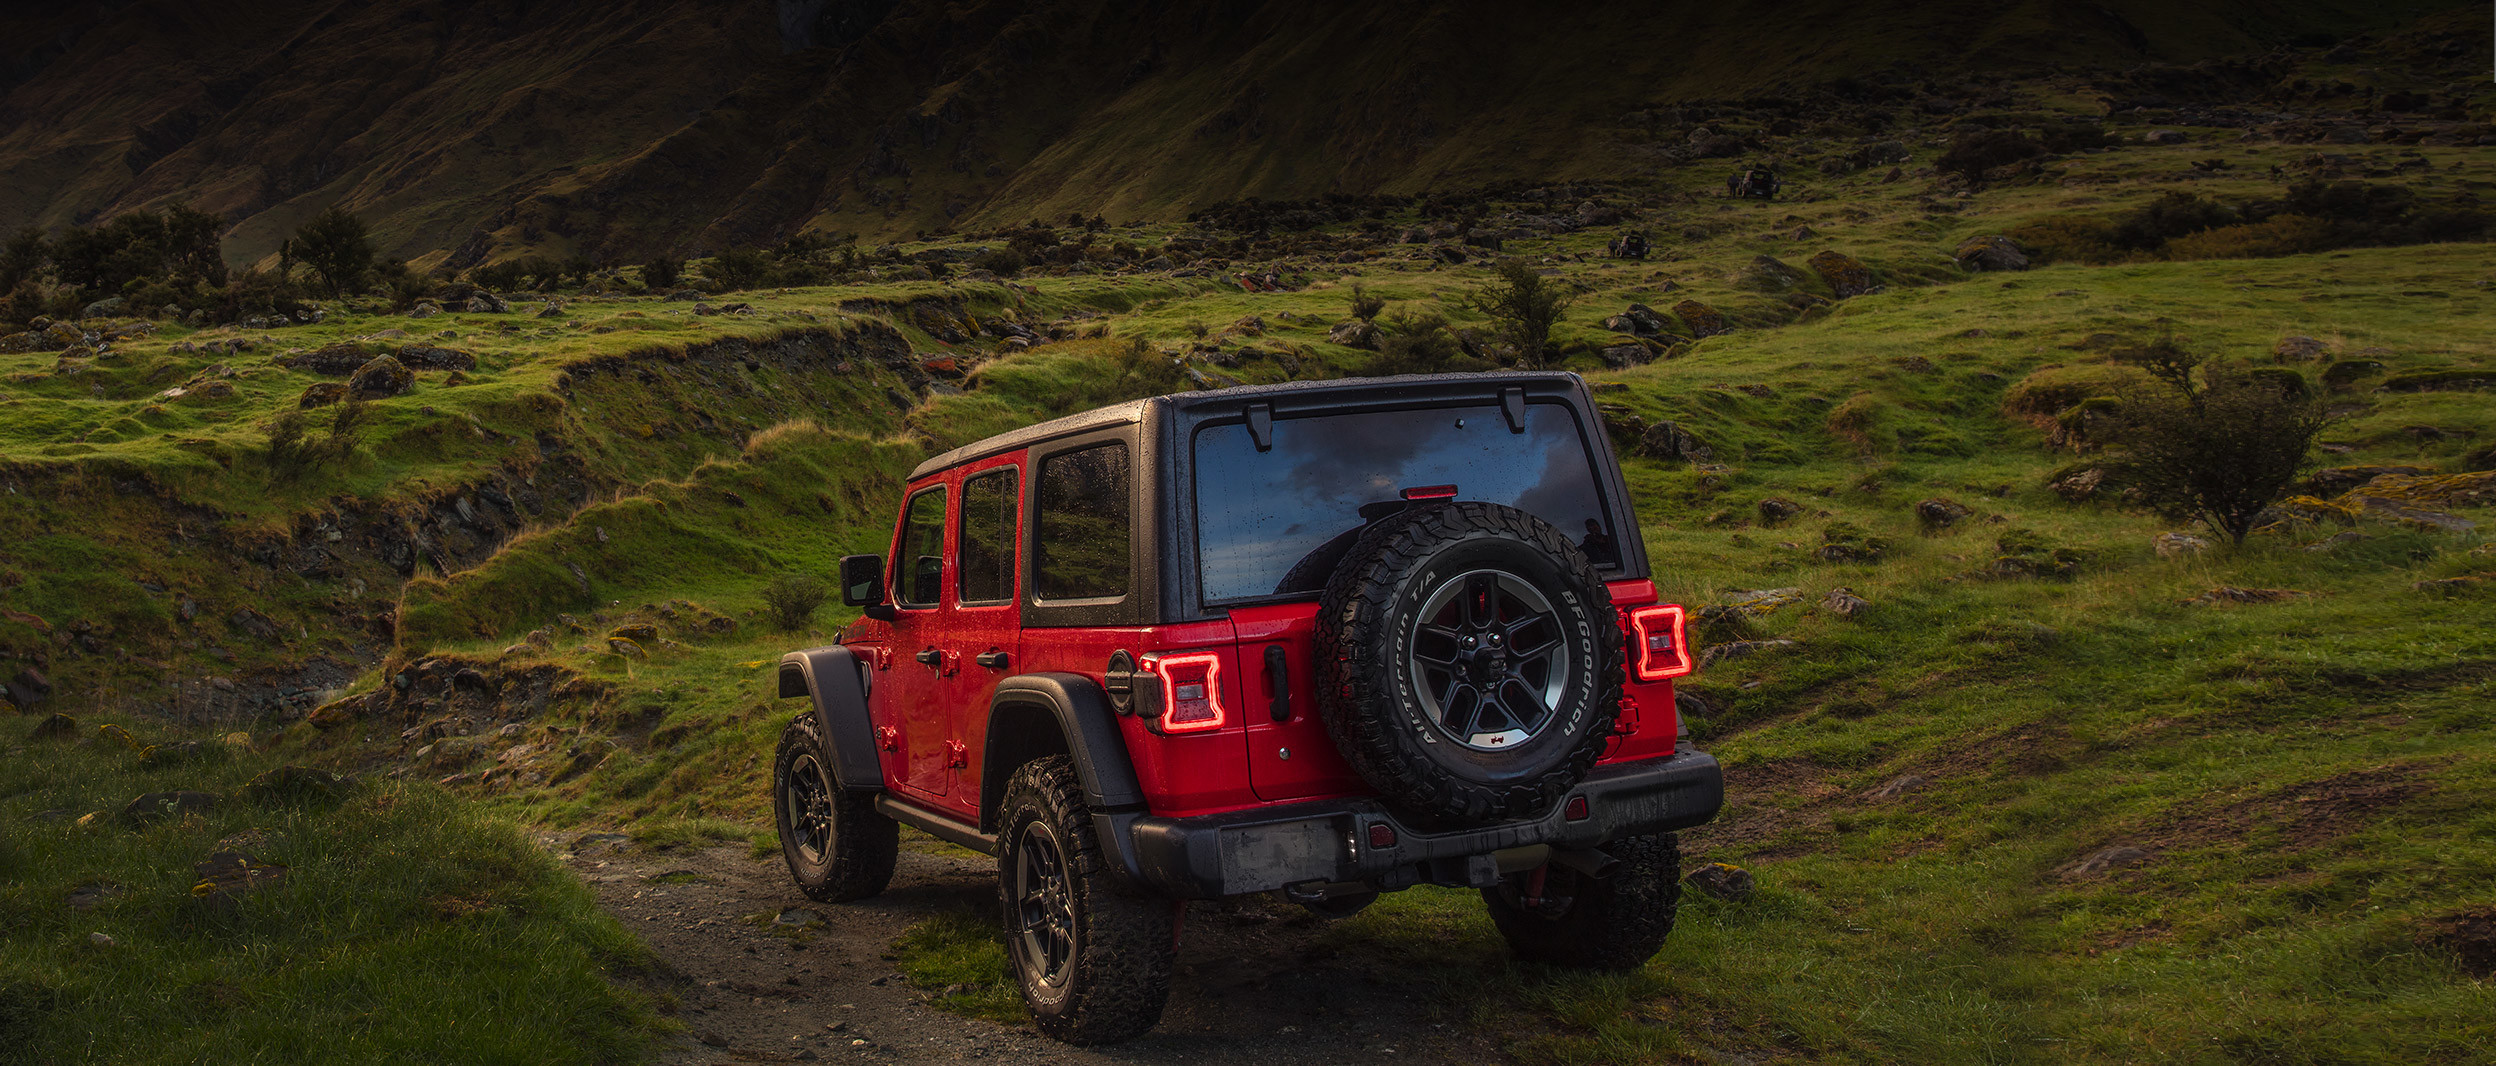 Rear quarter view of the red 2020 Jeep Wrangler parked on a dirt road facing mountains during sunset